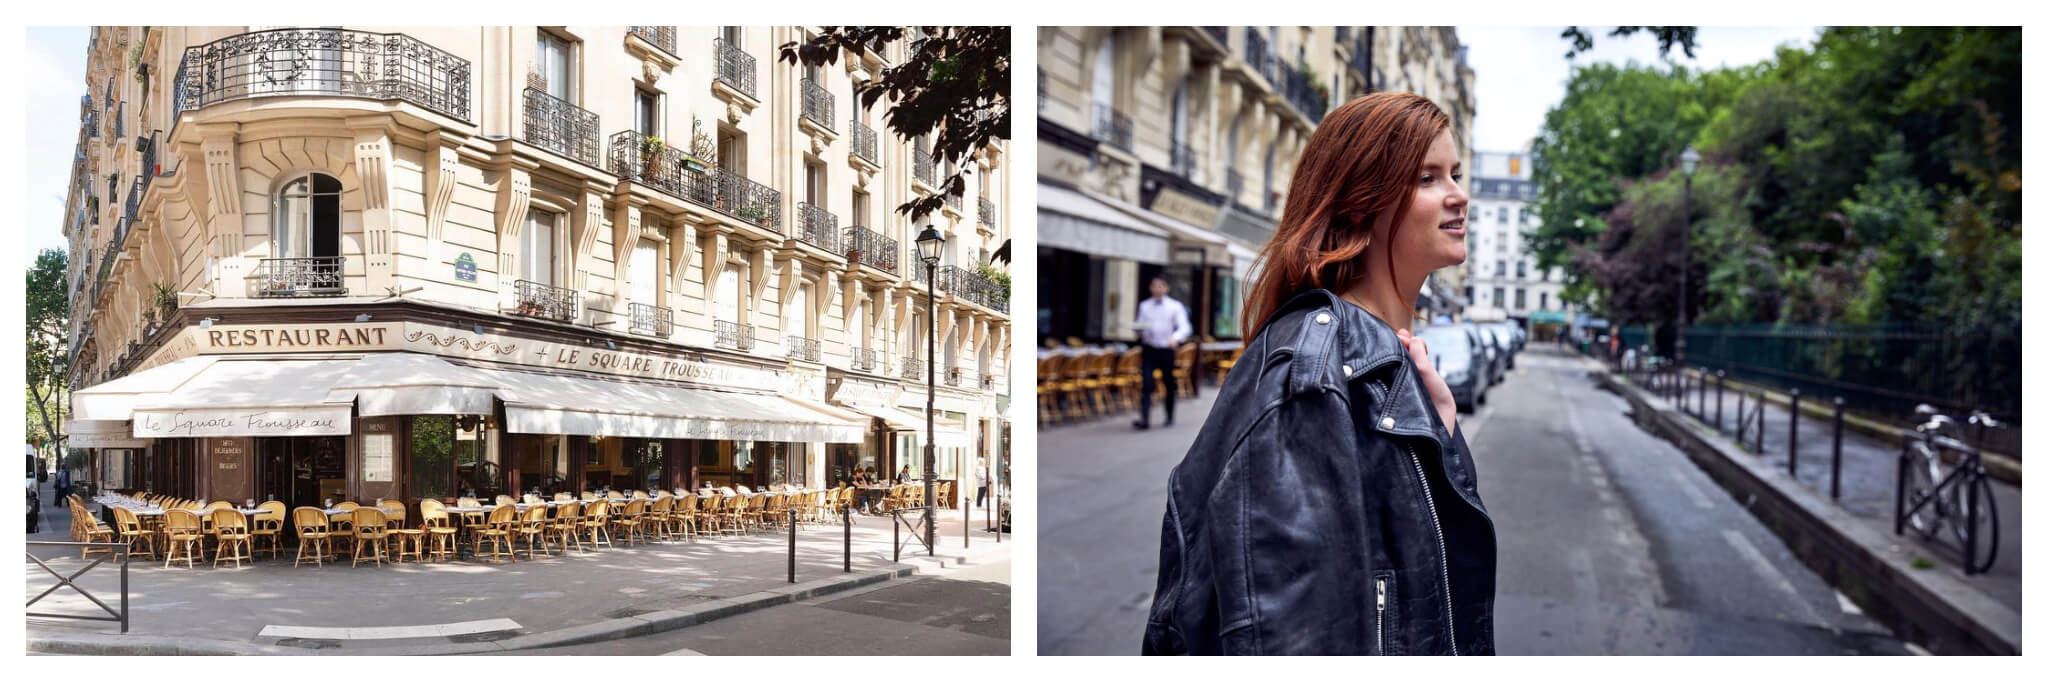 Left: Restaurant Square Trousseau near Square Trousseau in Paris on a sunny summer day, Right: A woman walks on the street next to Square Trousseau in Paris